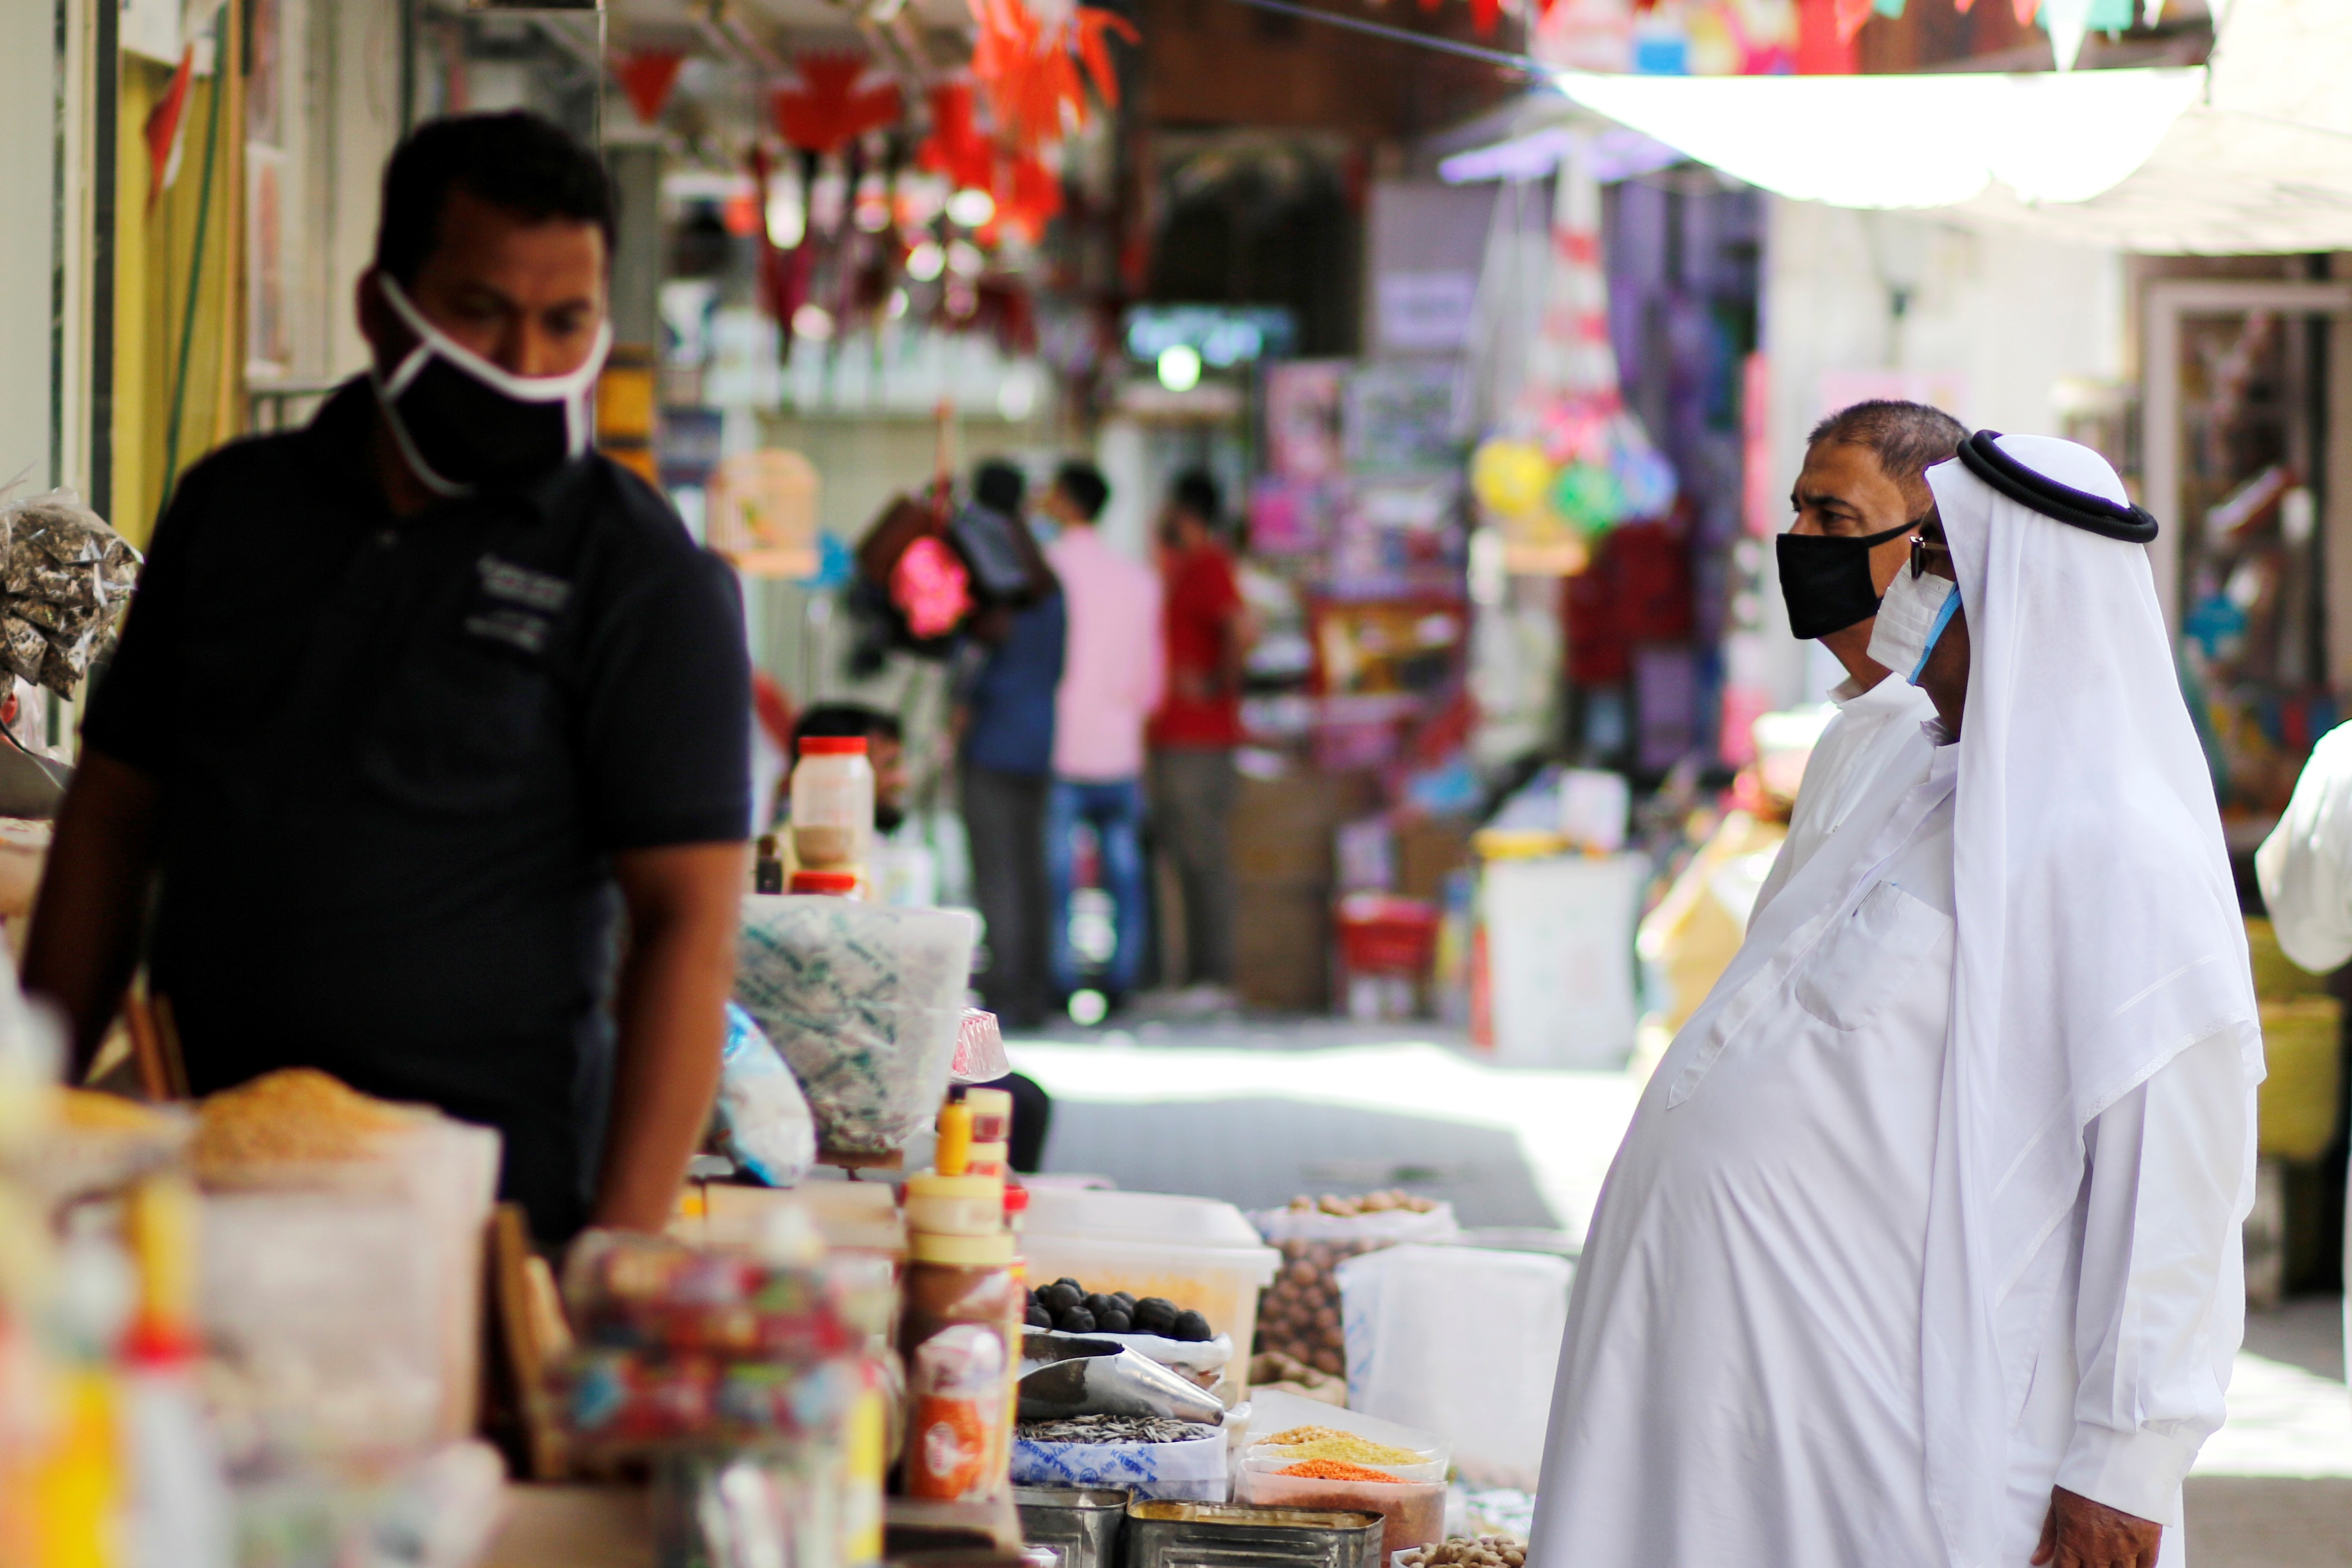 People wear protective face masks following the outbreak of the coronavirus disease (COVID-19), as they shop ahead of the holy month of Ramadan in Manama, Bahrain, April 23, 2020